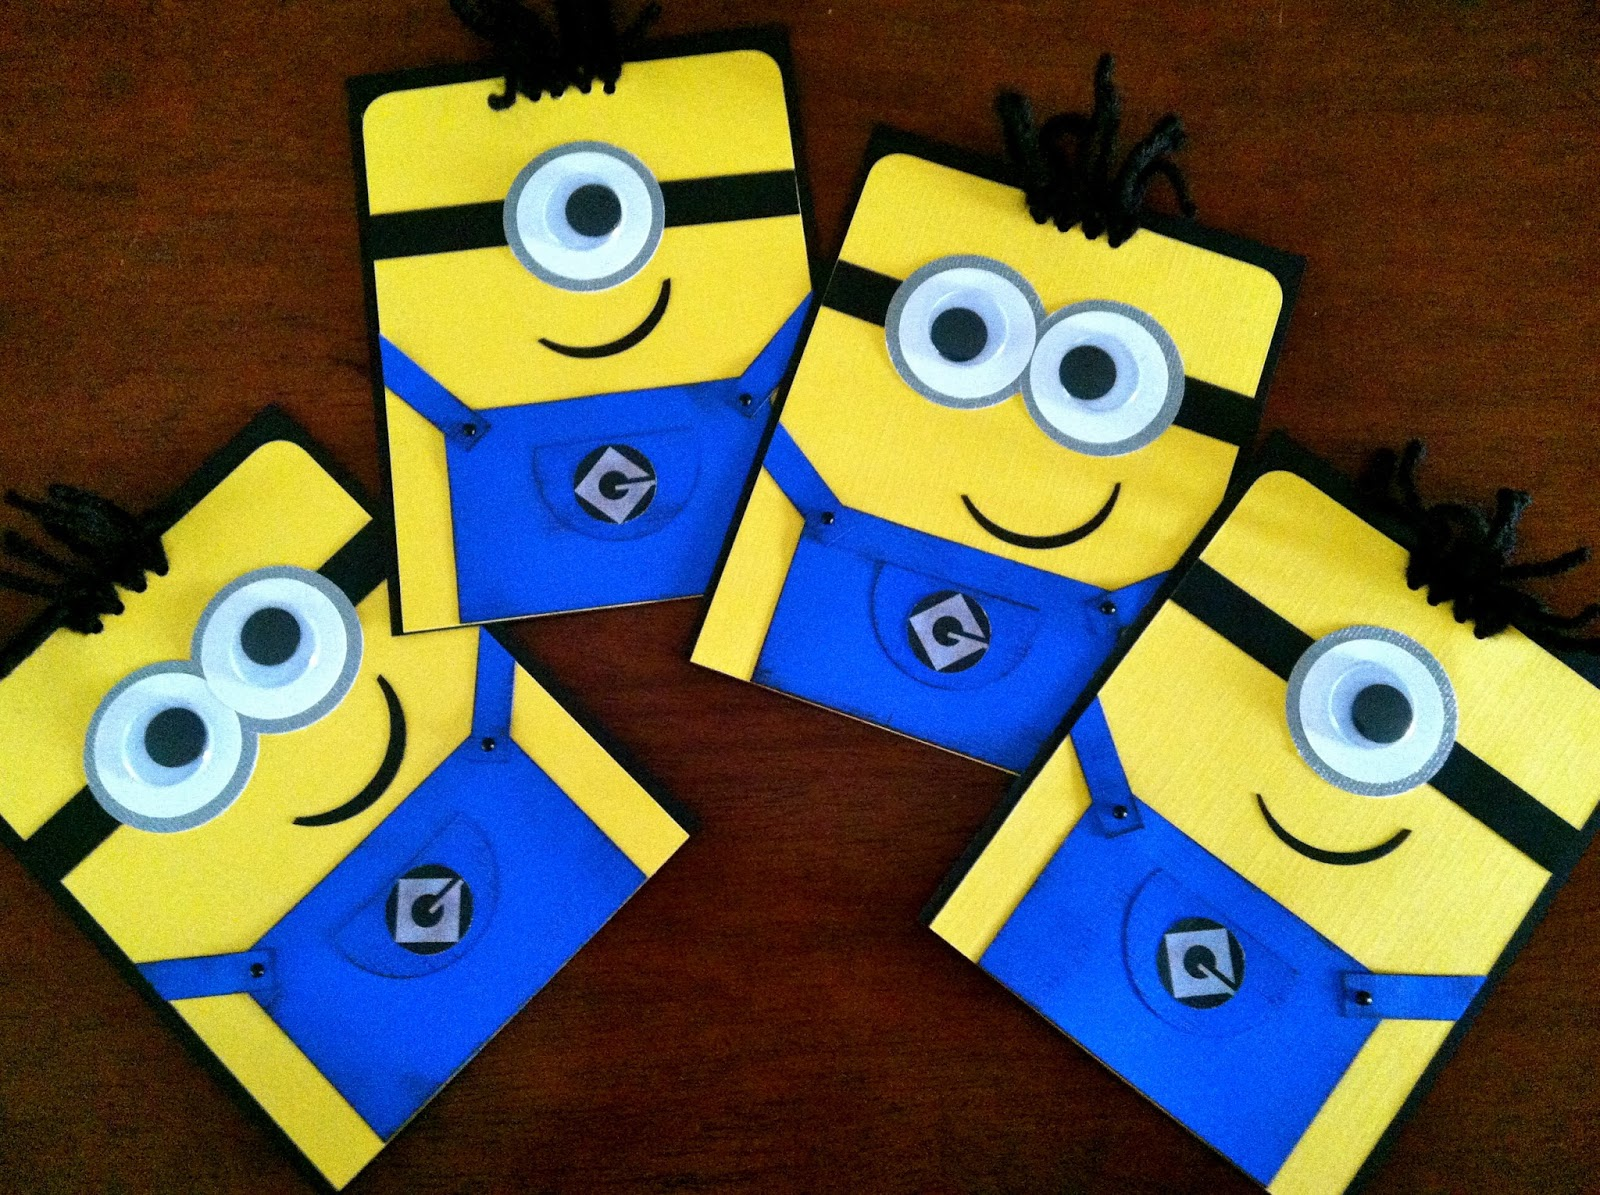 photograph relating to Minion Gru Logo Printable named Just one Inventive Momma: Gather the Minions!